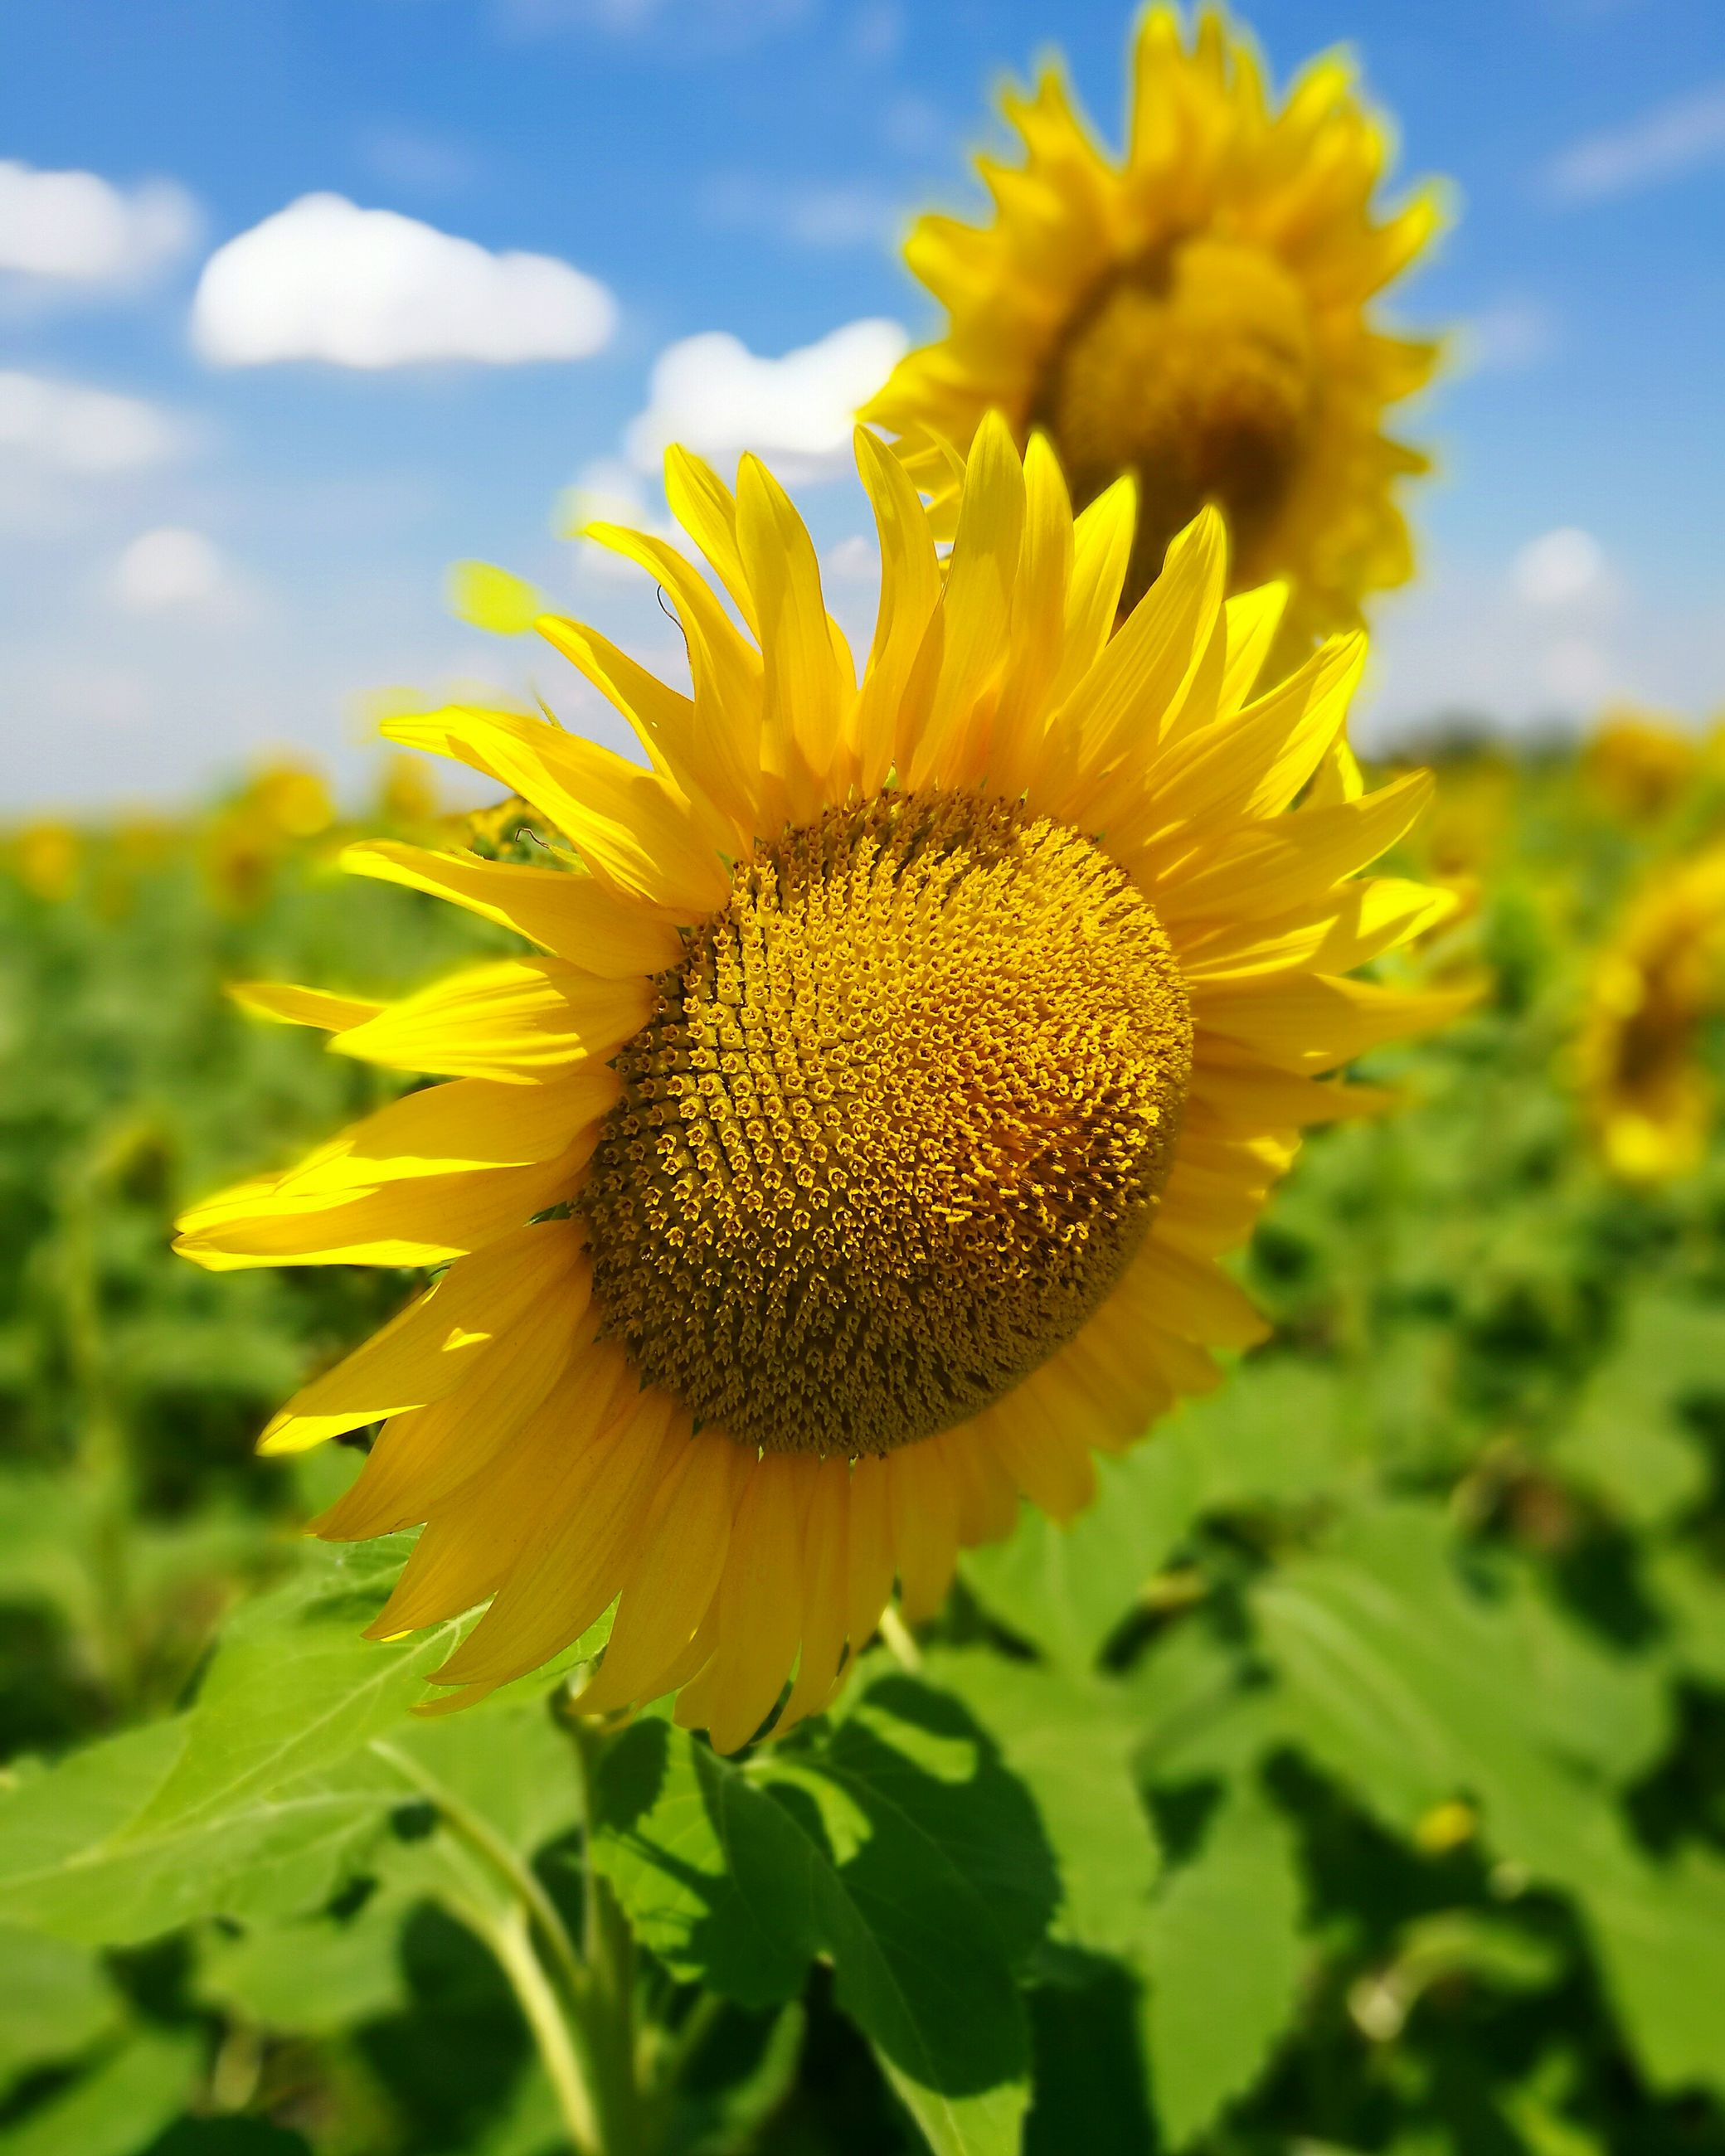 flower, yellow, nature, beauty in nature, growth, fragility, petal, freshness, flower head, close-up, no people, outdoors, plant, pollen, sunflower, day, sky